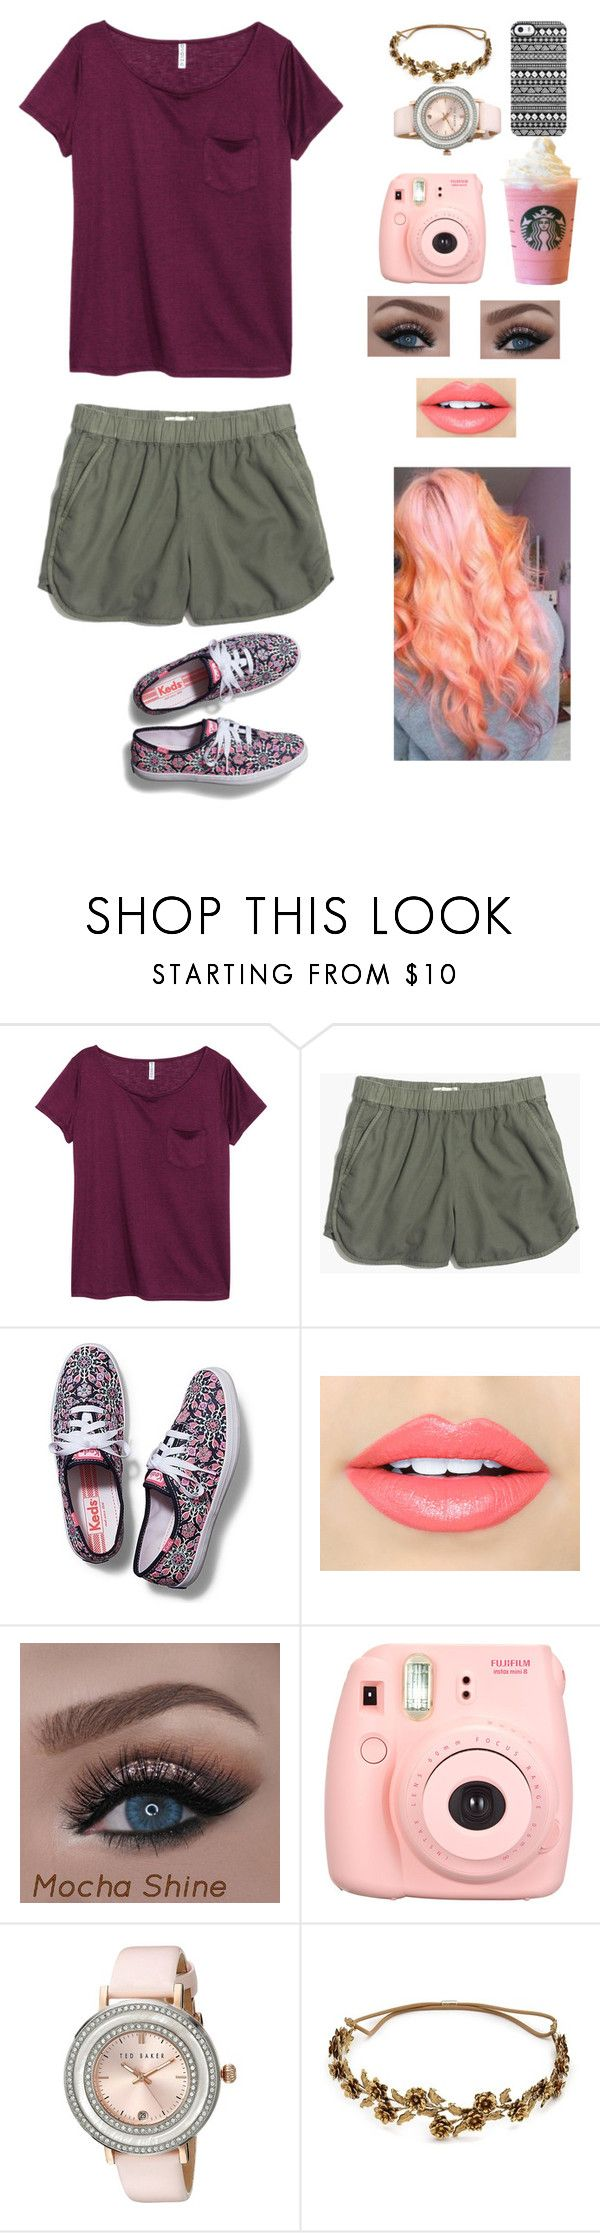 """""""Untitled #52"""" by jenna-carr ❤ liked on Polyvore featuring H&M, Madewell, Keds, Fiebiger, Polaroid, Ted Baker, Jennifer Behr and Uncommon"""